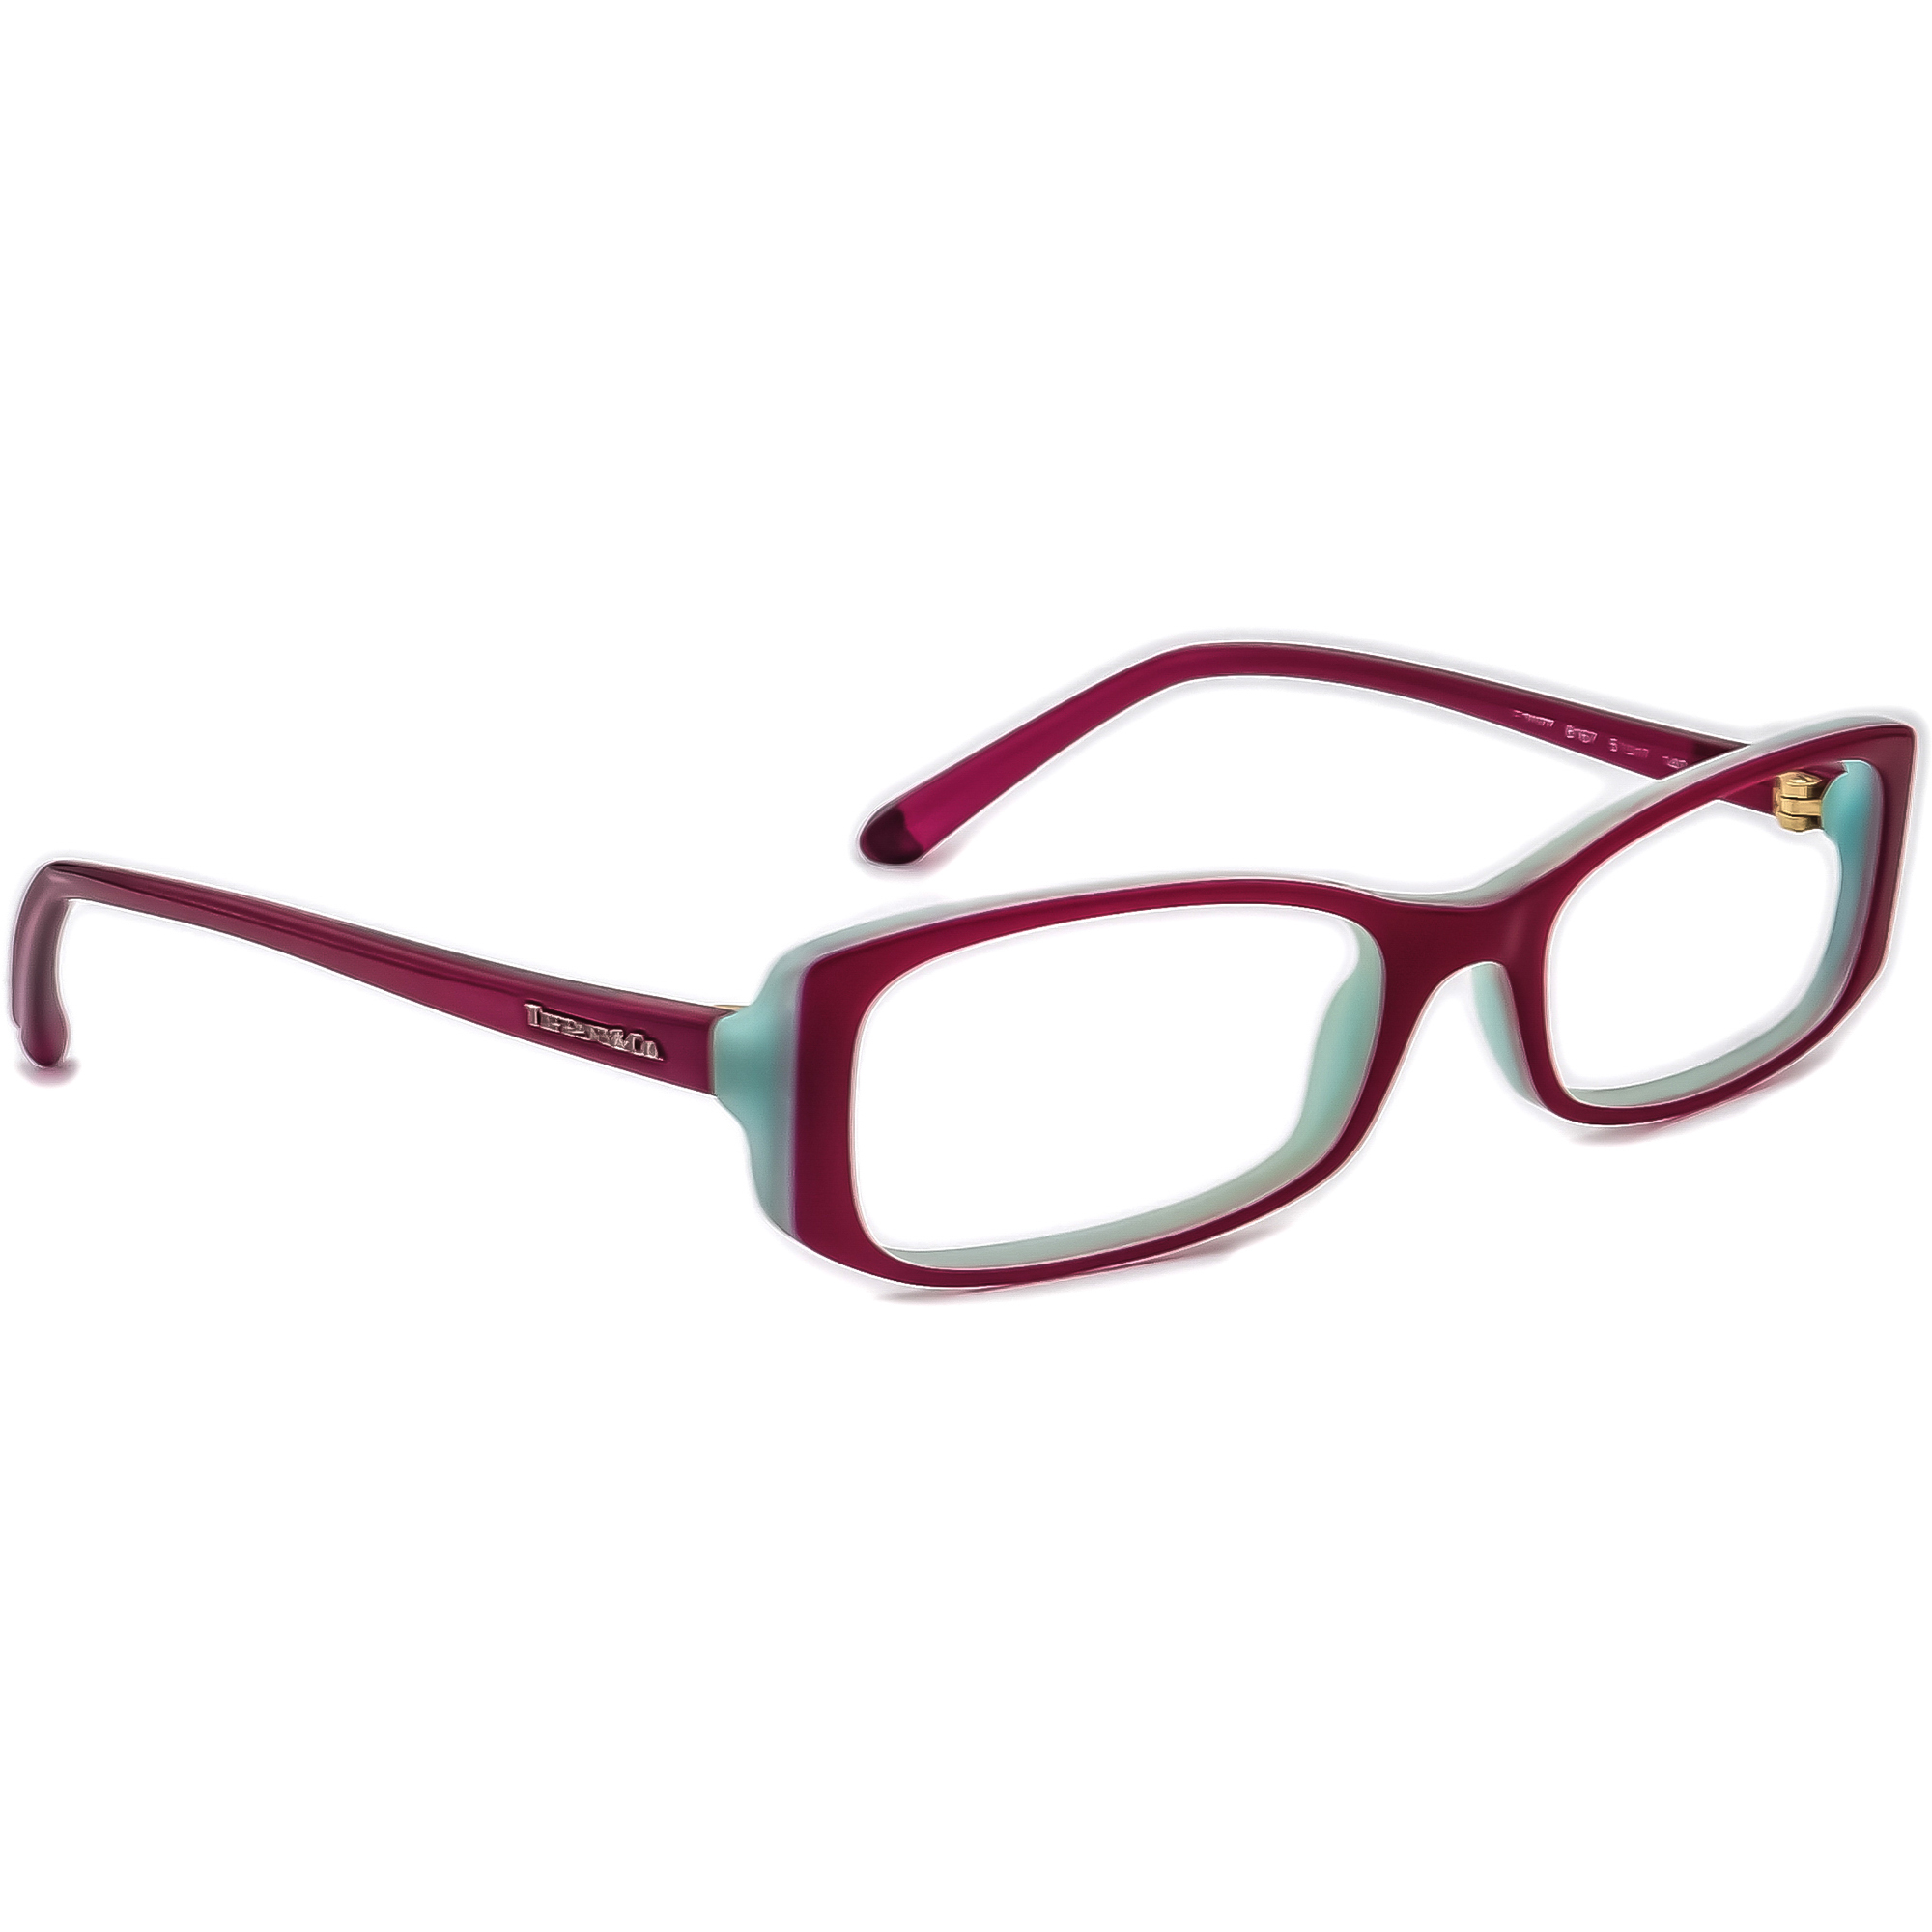 Tiffany & Co. TF 2077 8167 Eyeglasses